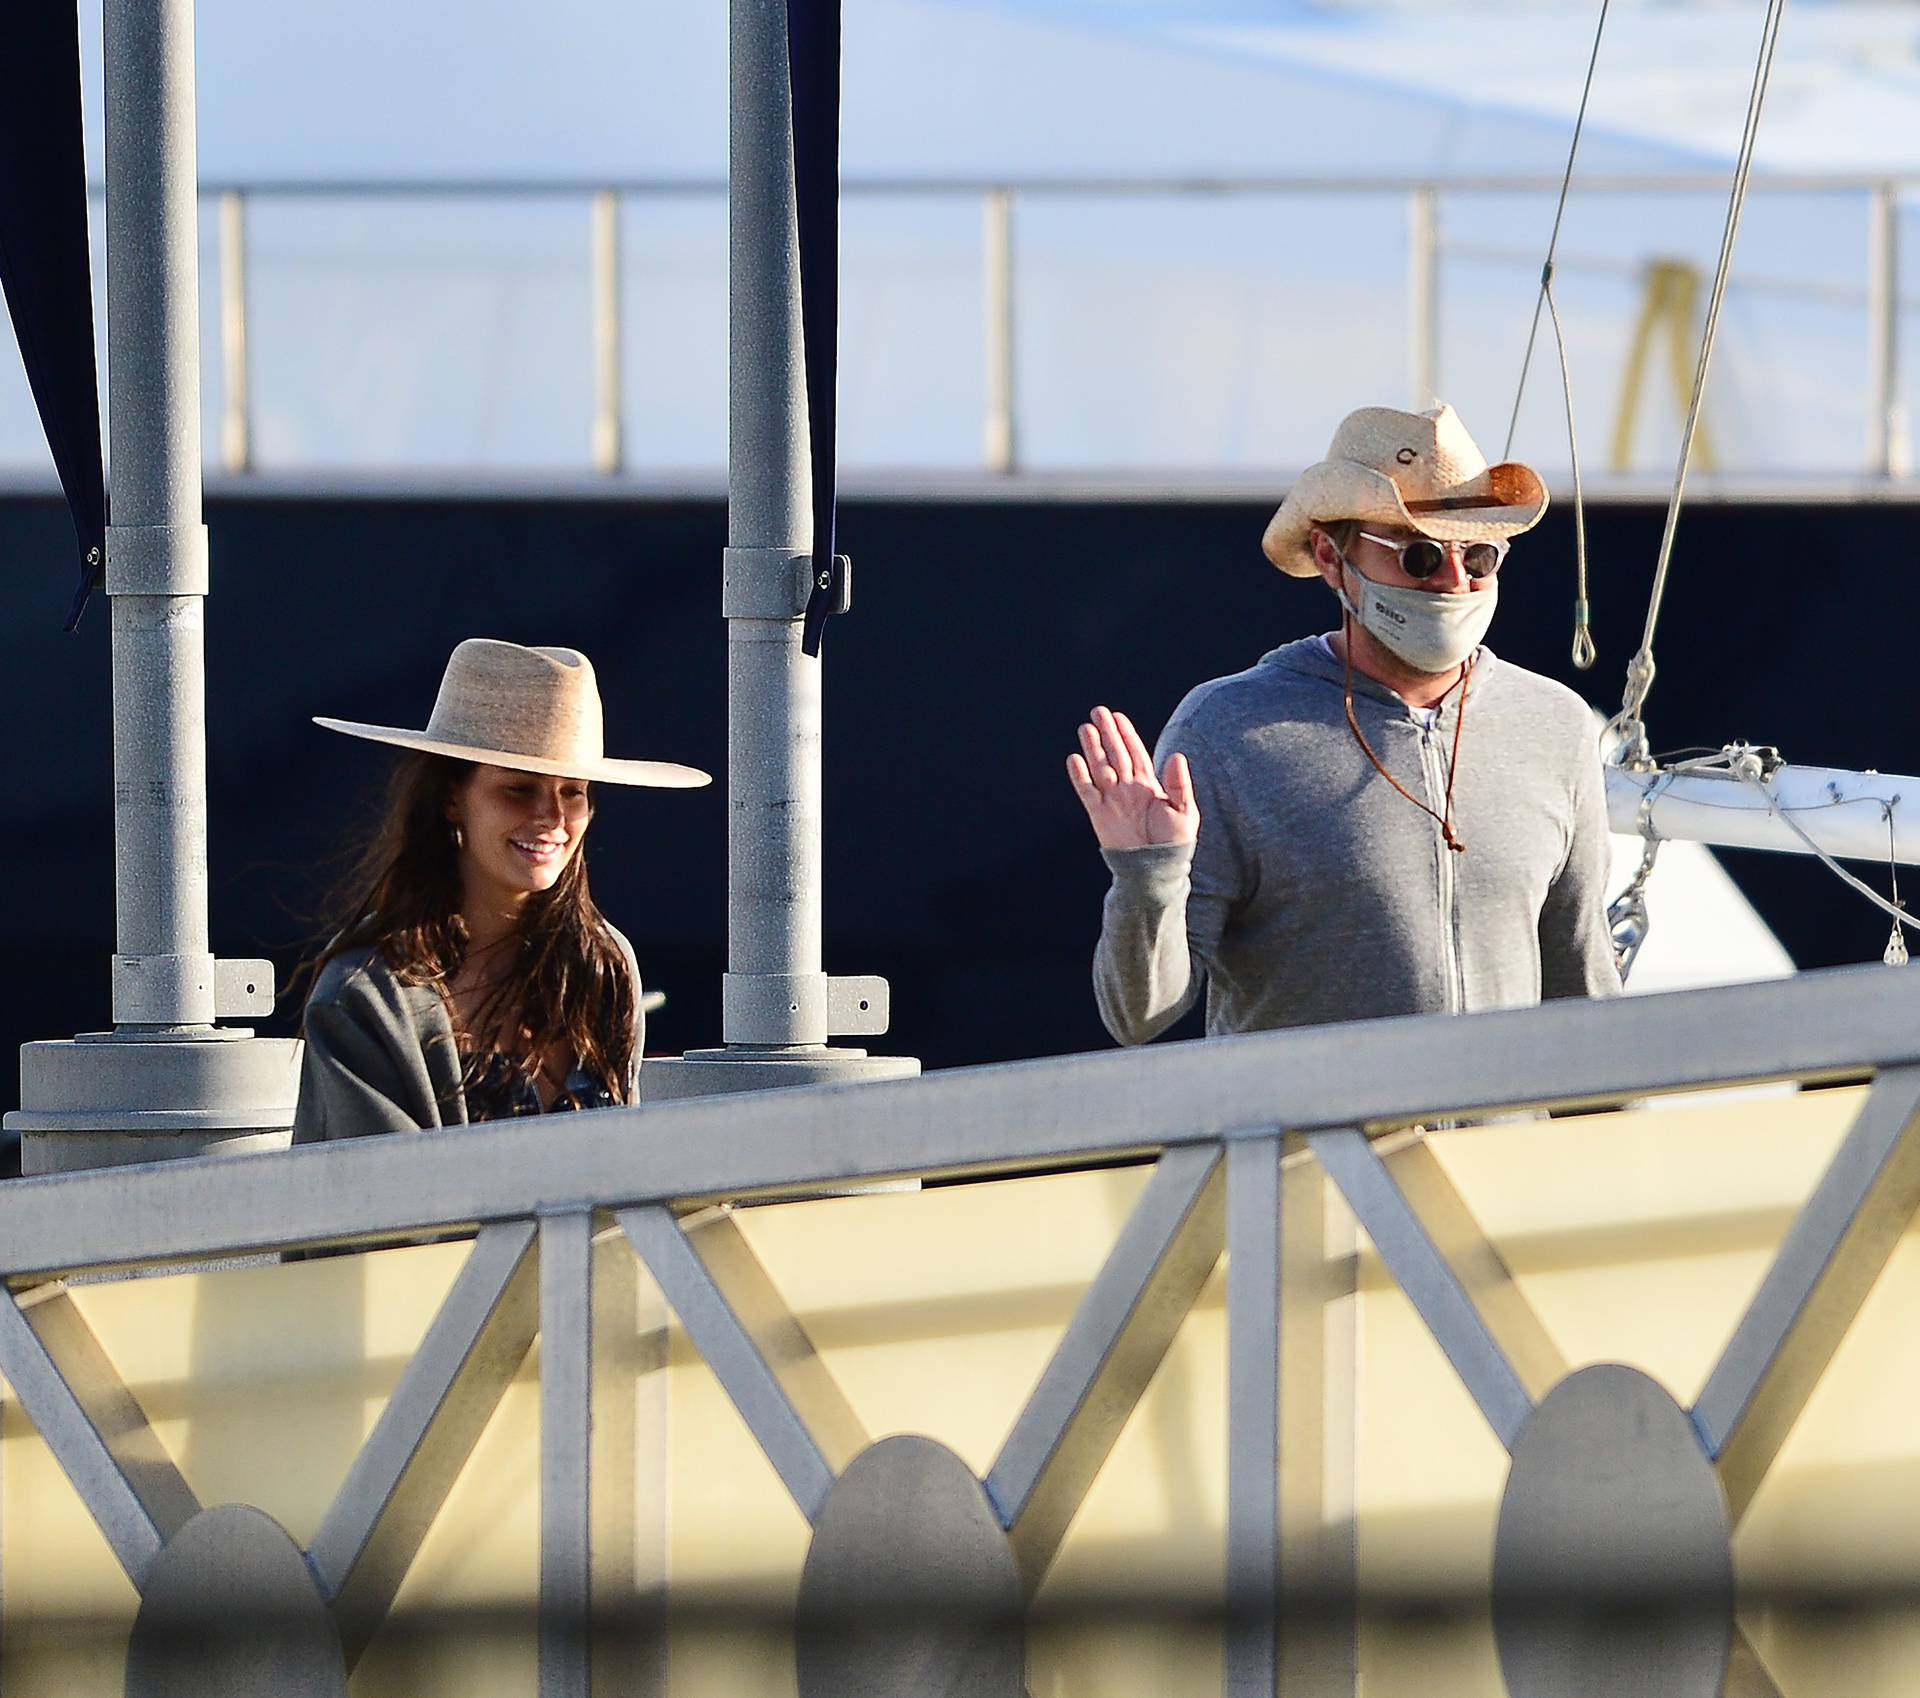 EXCLUSIVE: **PREMIUM RATES APPLY** Leonardo DiCaprio celebrates with his girlfriend Camila on a mega yacht for her Birthday